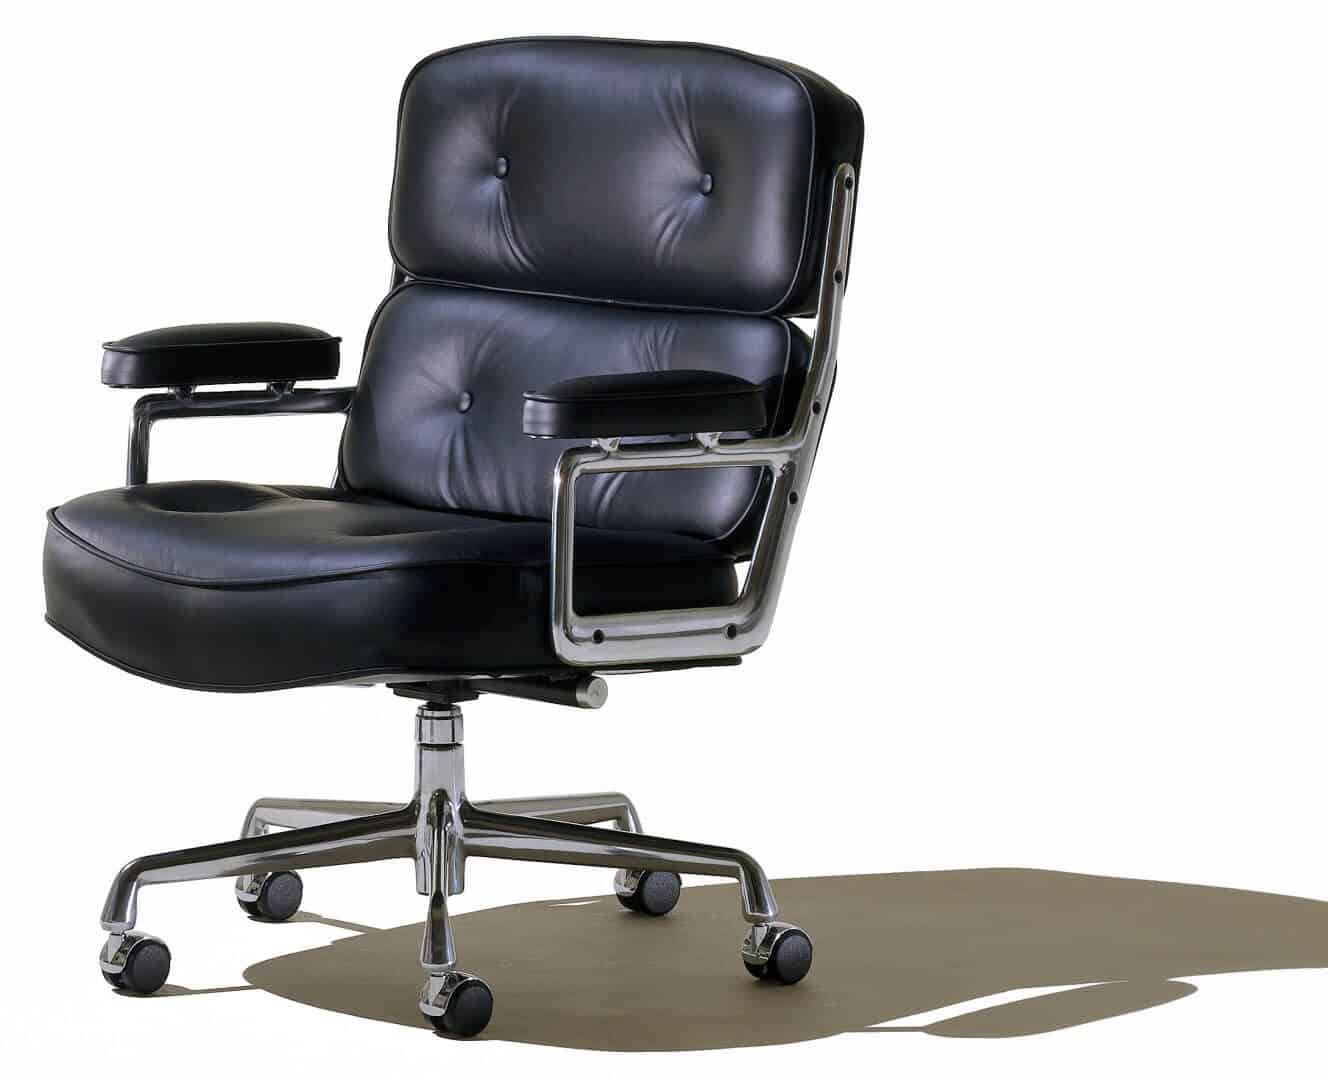 Herman Miller Eames Office Chair Office Chair Guide And How To Buy A Desk Chair 43 Top 10